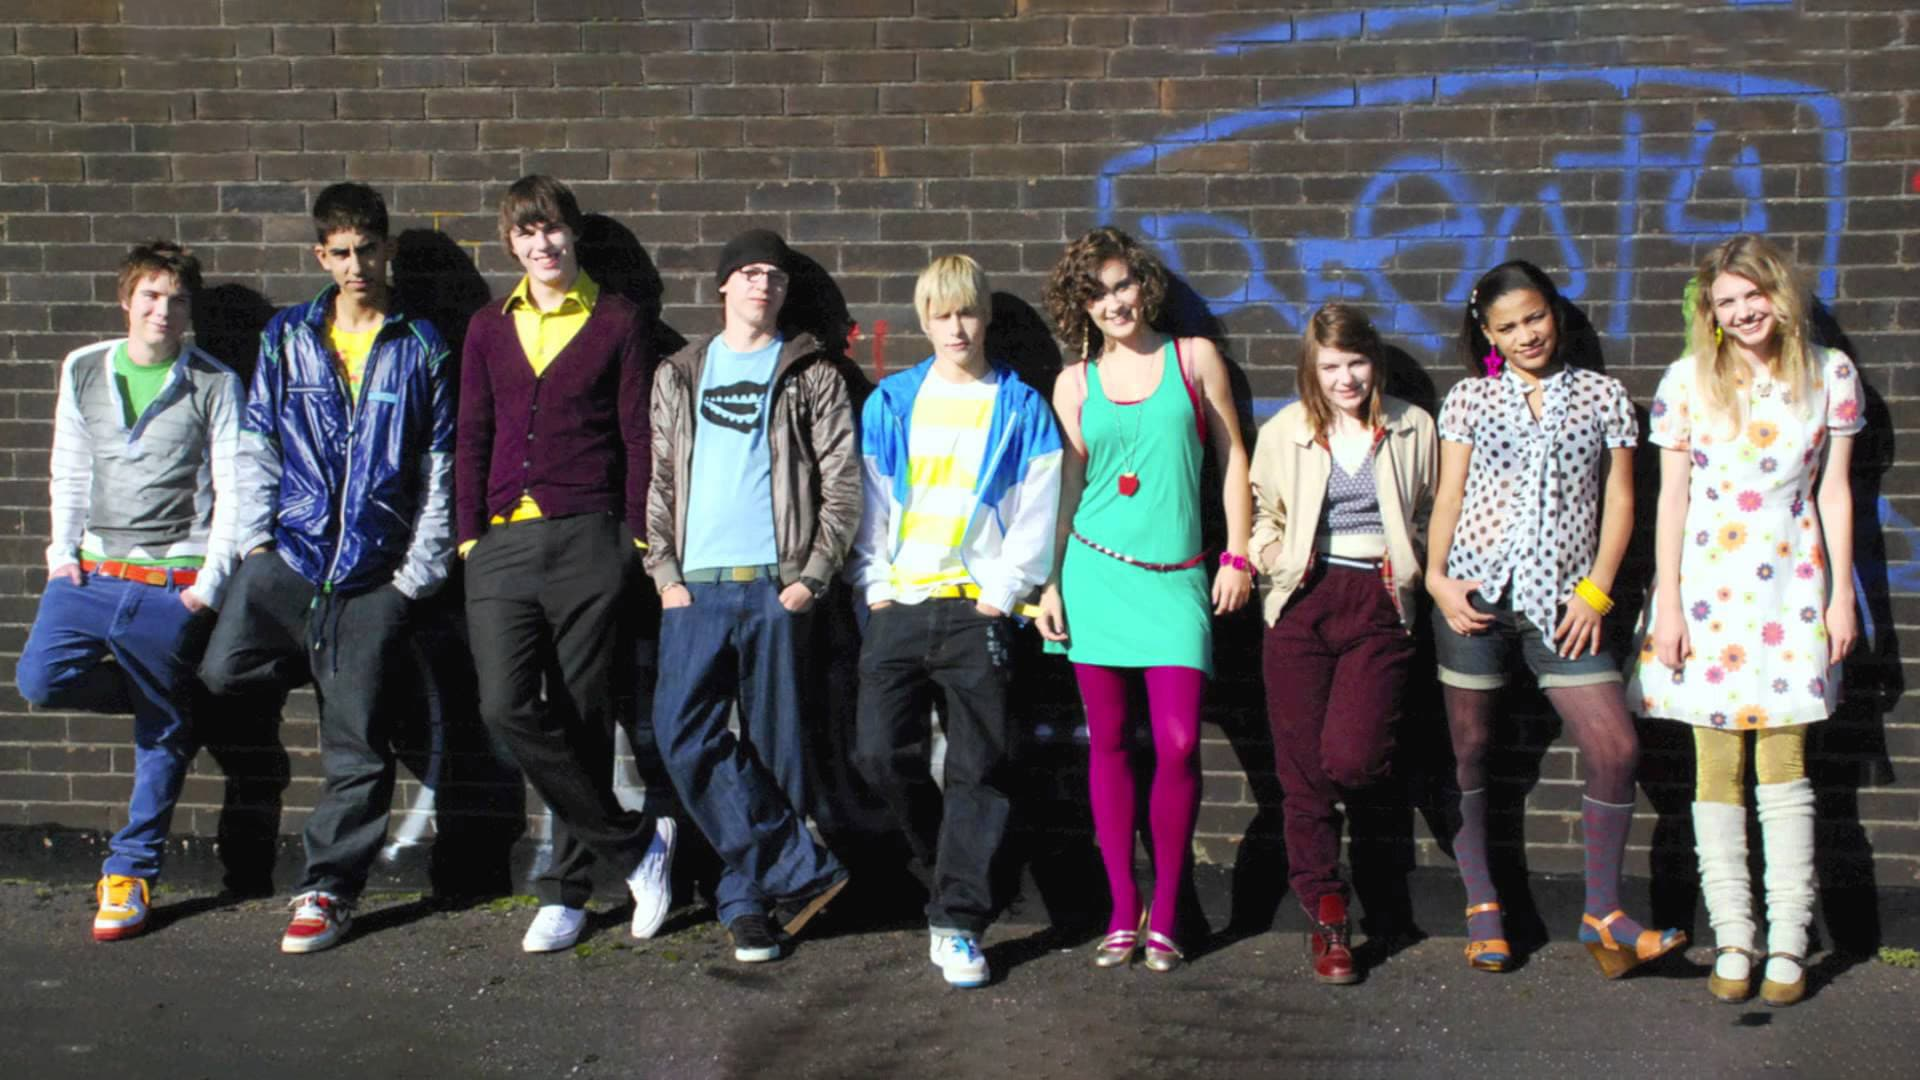 Skins It's All Over Now